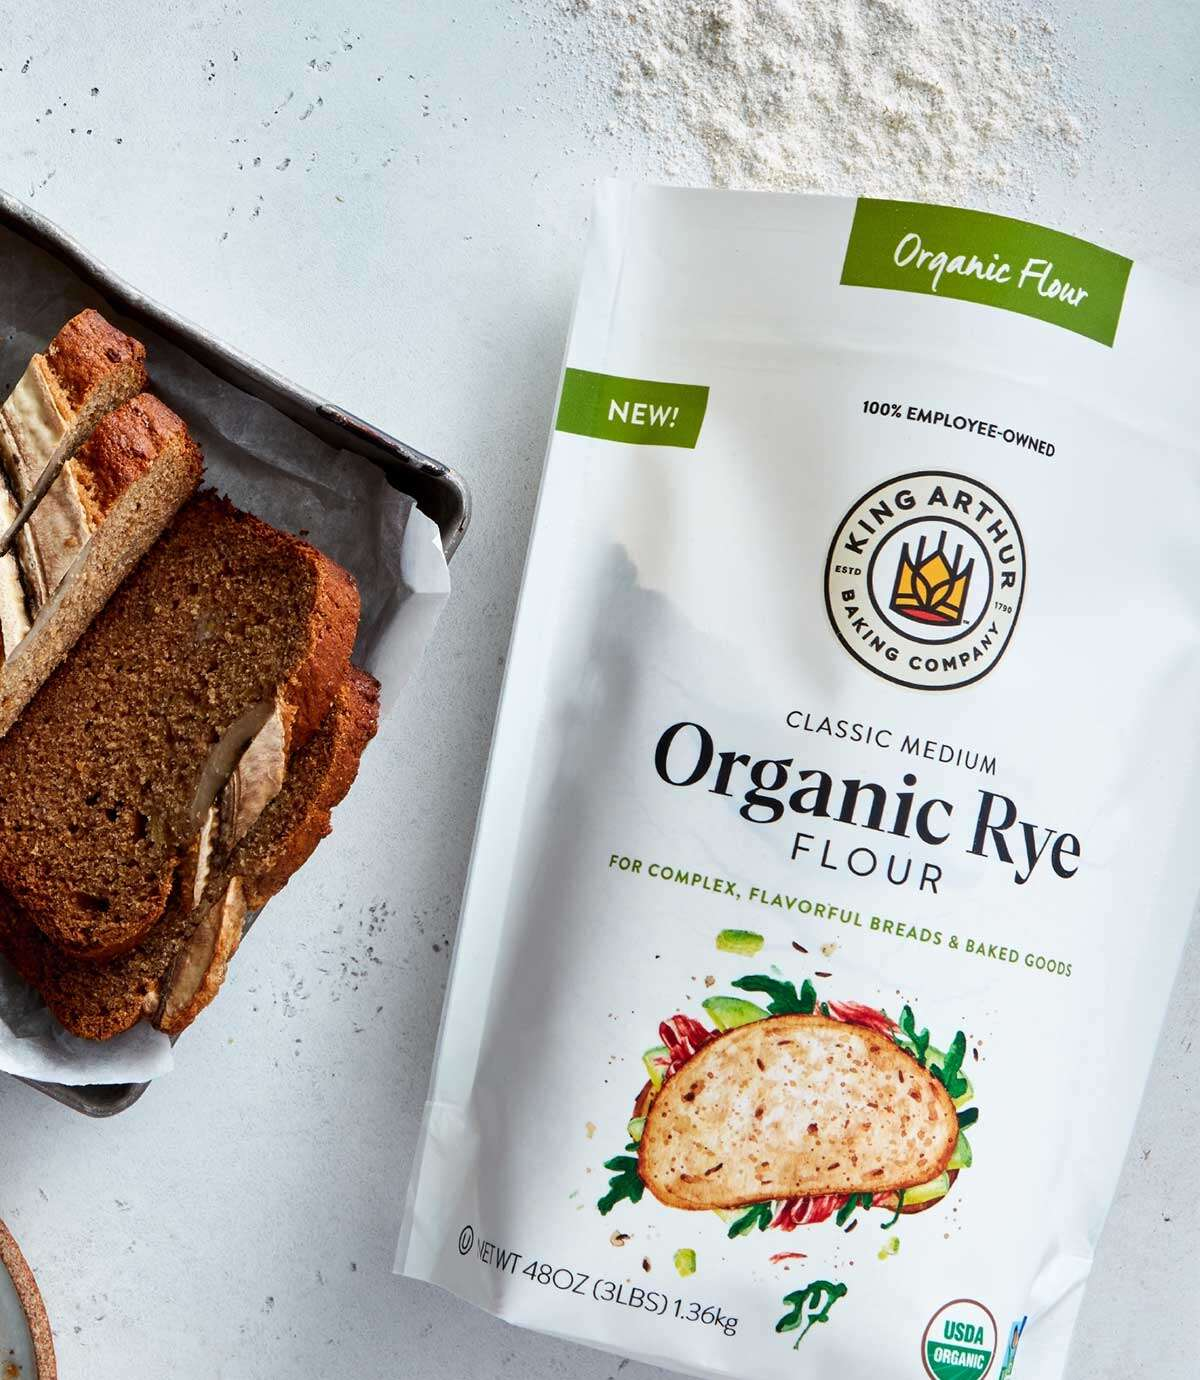 Bag of Organic Medium Rye Flour, next to a loaf of banana bread